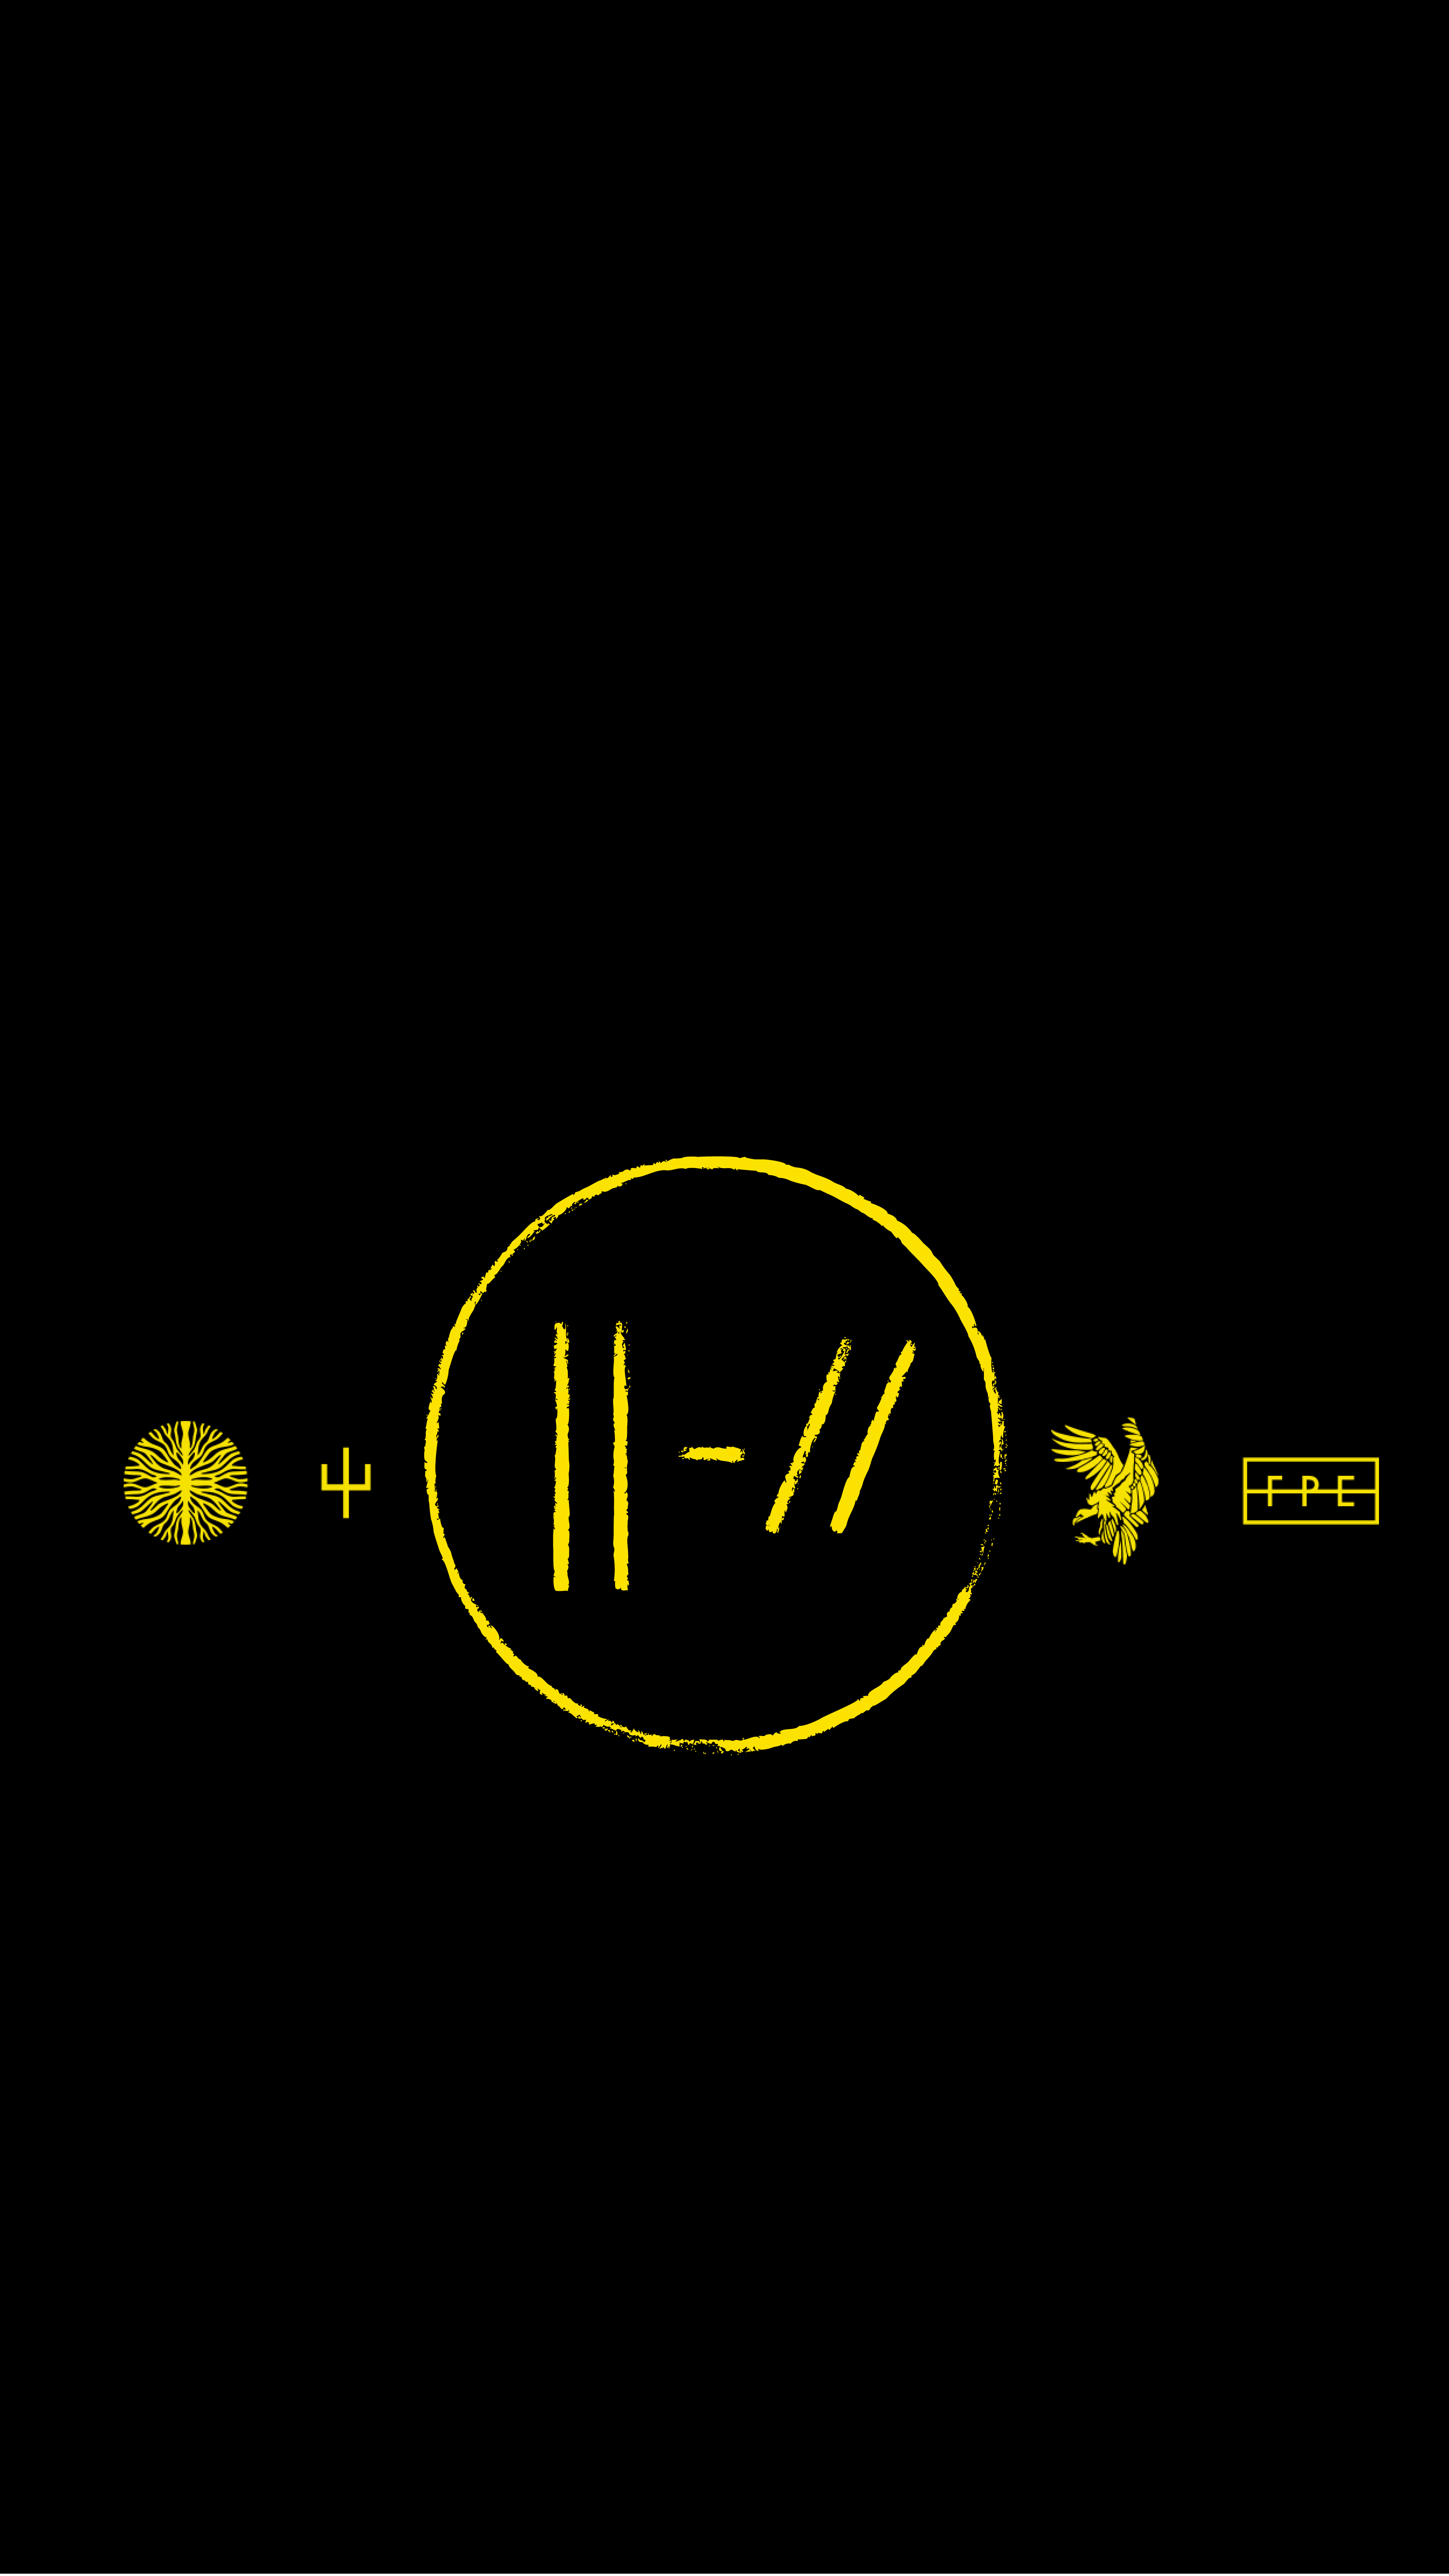 3726x6624 Trench Wallpaper twentyonepilots twentyonepilot 3726x6624